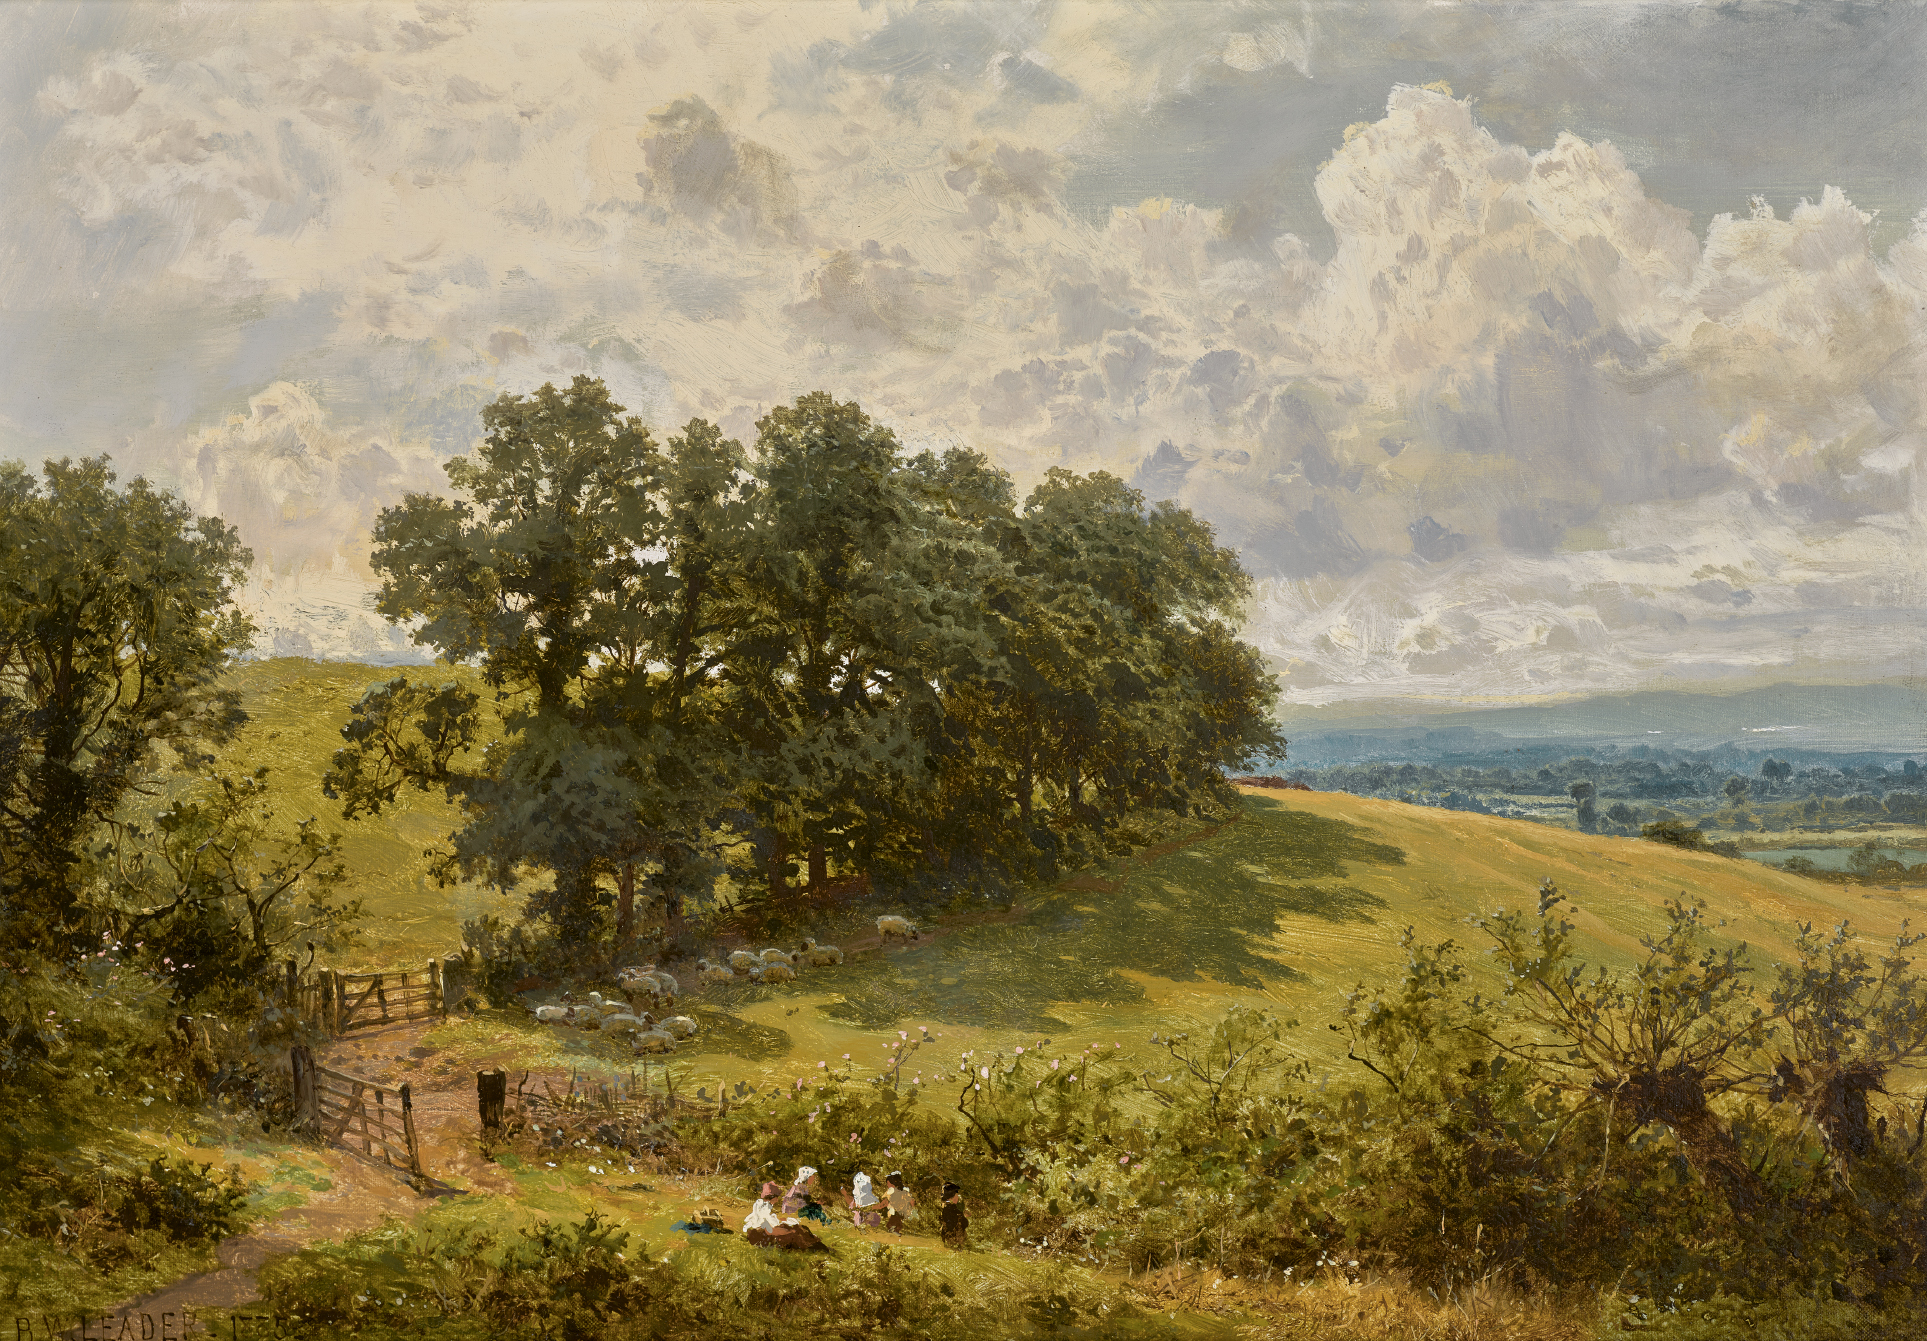 BENJAMIN WILLIAMS LEADER, R.A. | Hedge Row Elms at Hillocks Green